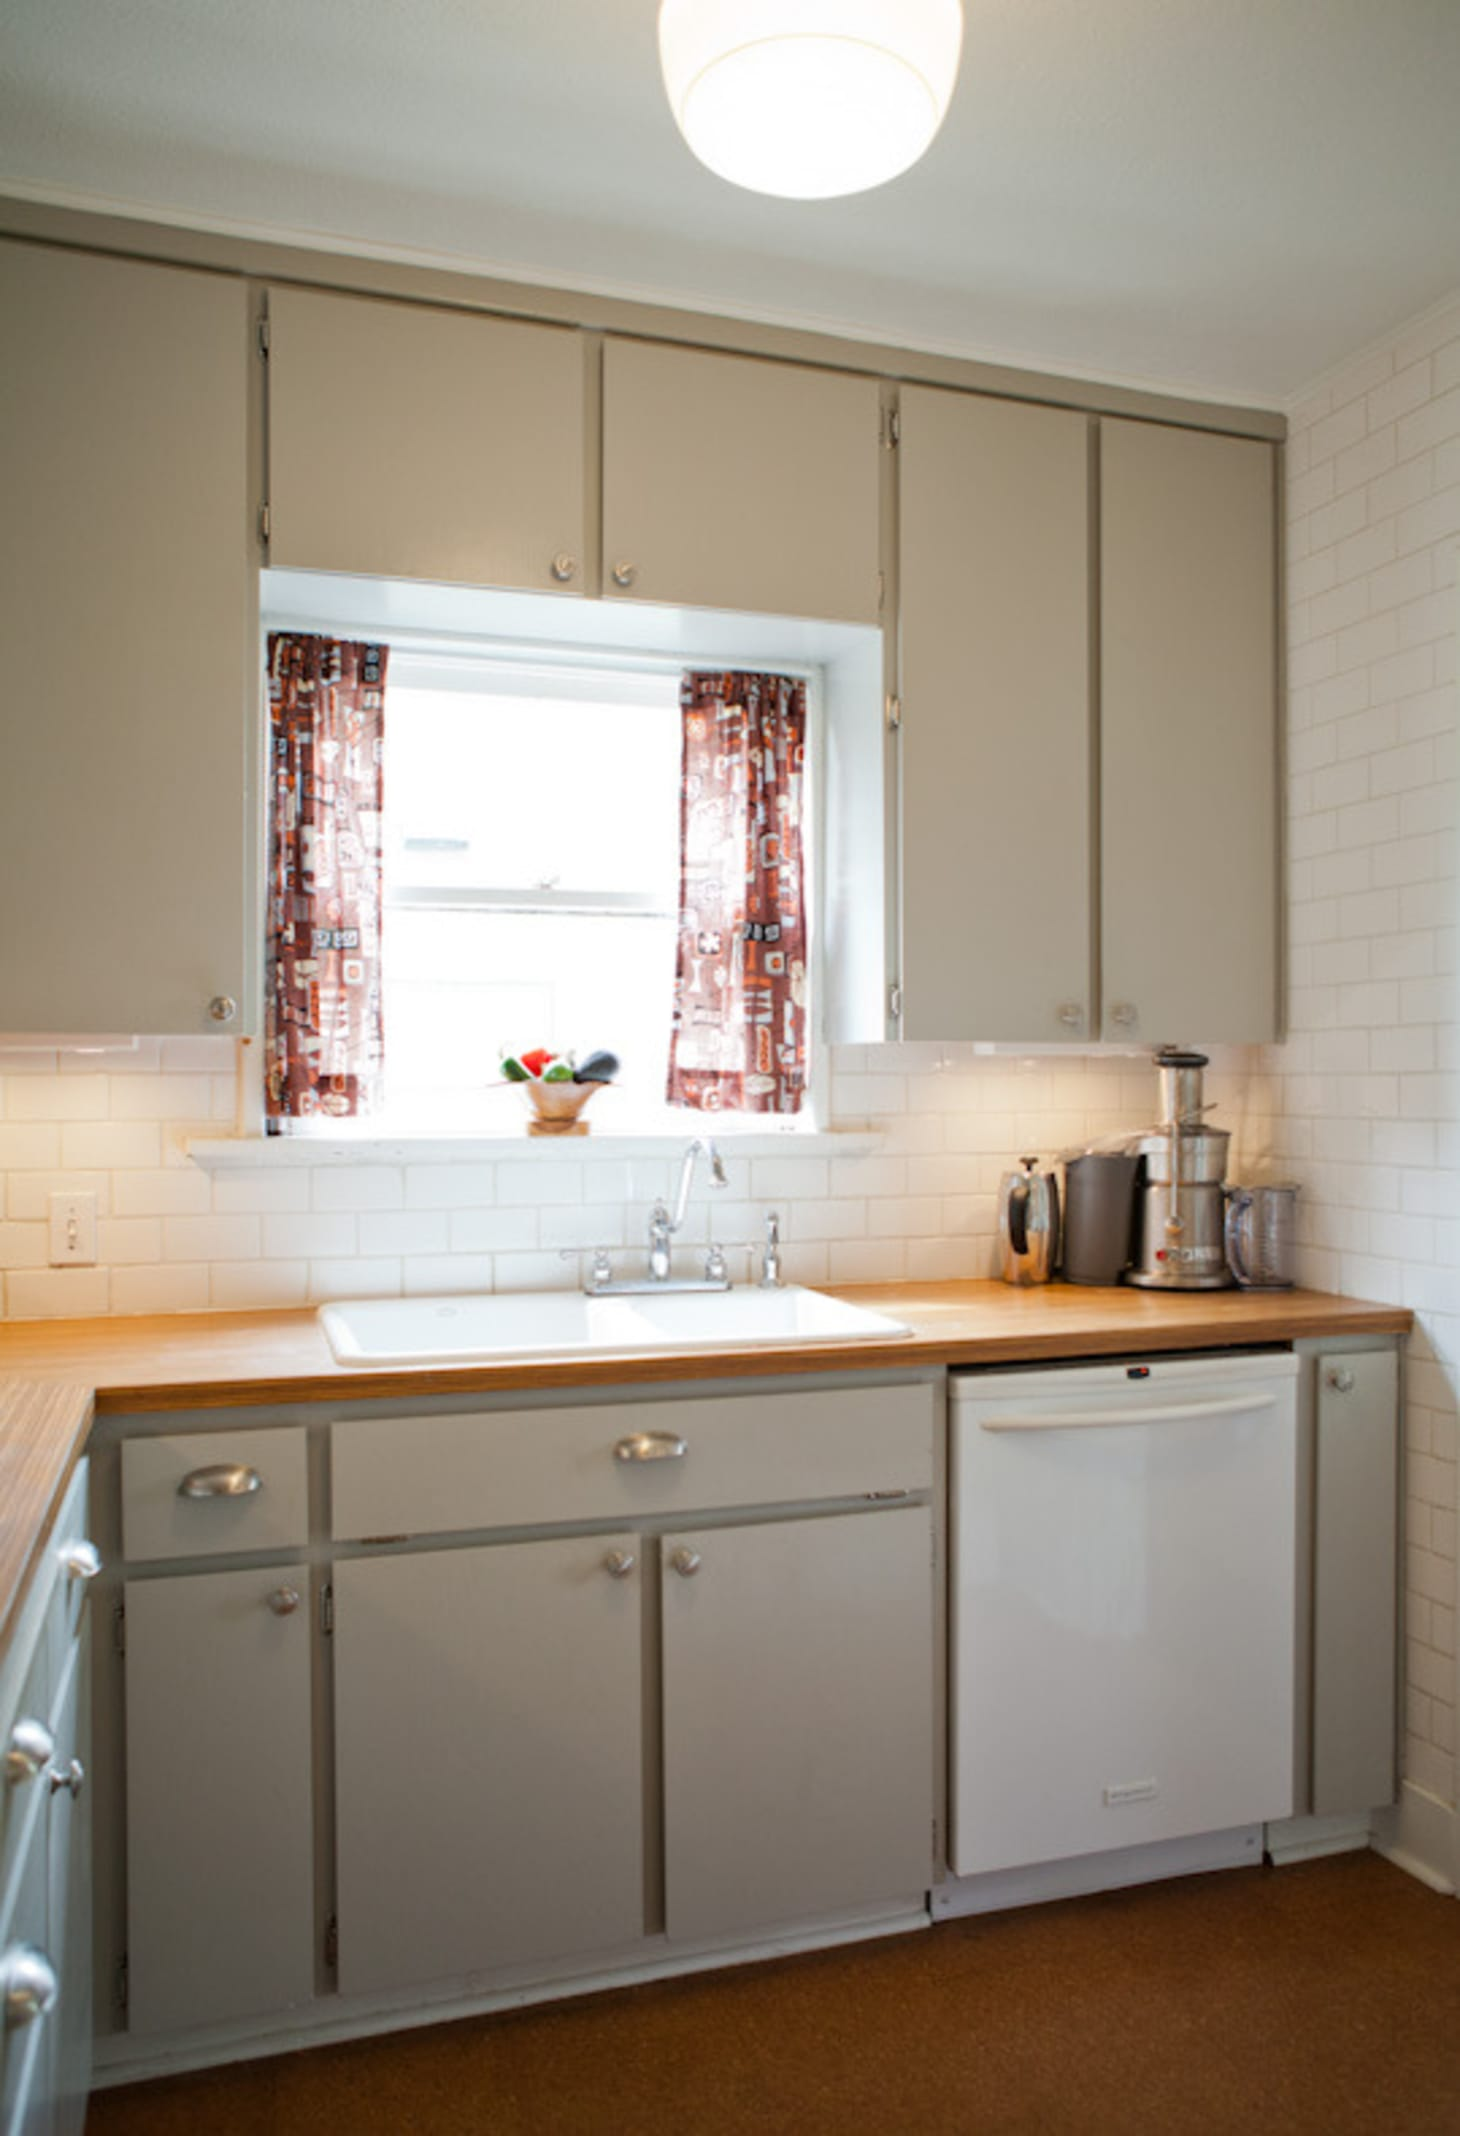 Take Great Photos Of Your Kitchen 4 Tips Kitchn